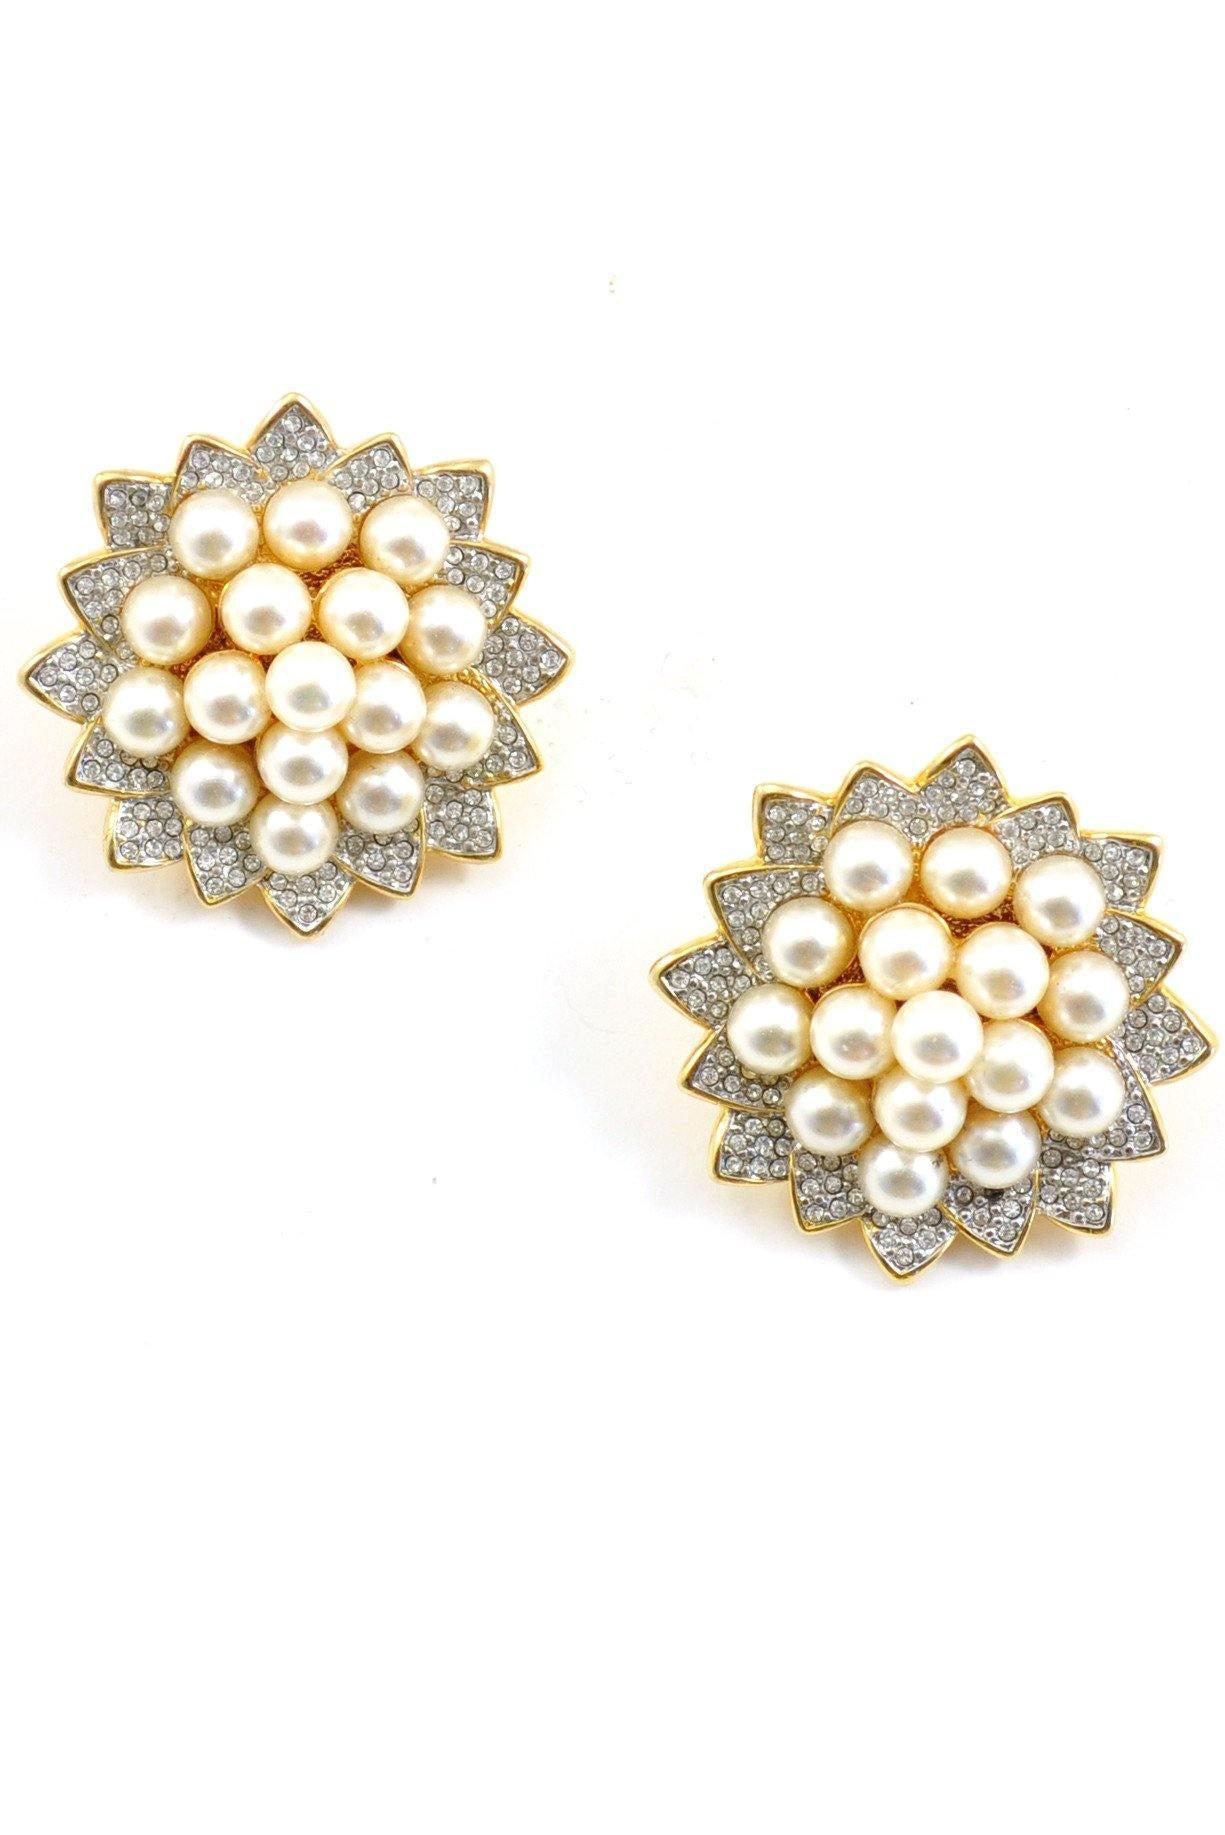 80s__Swarovski__Statement Pearl Clip-On Earrings